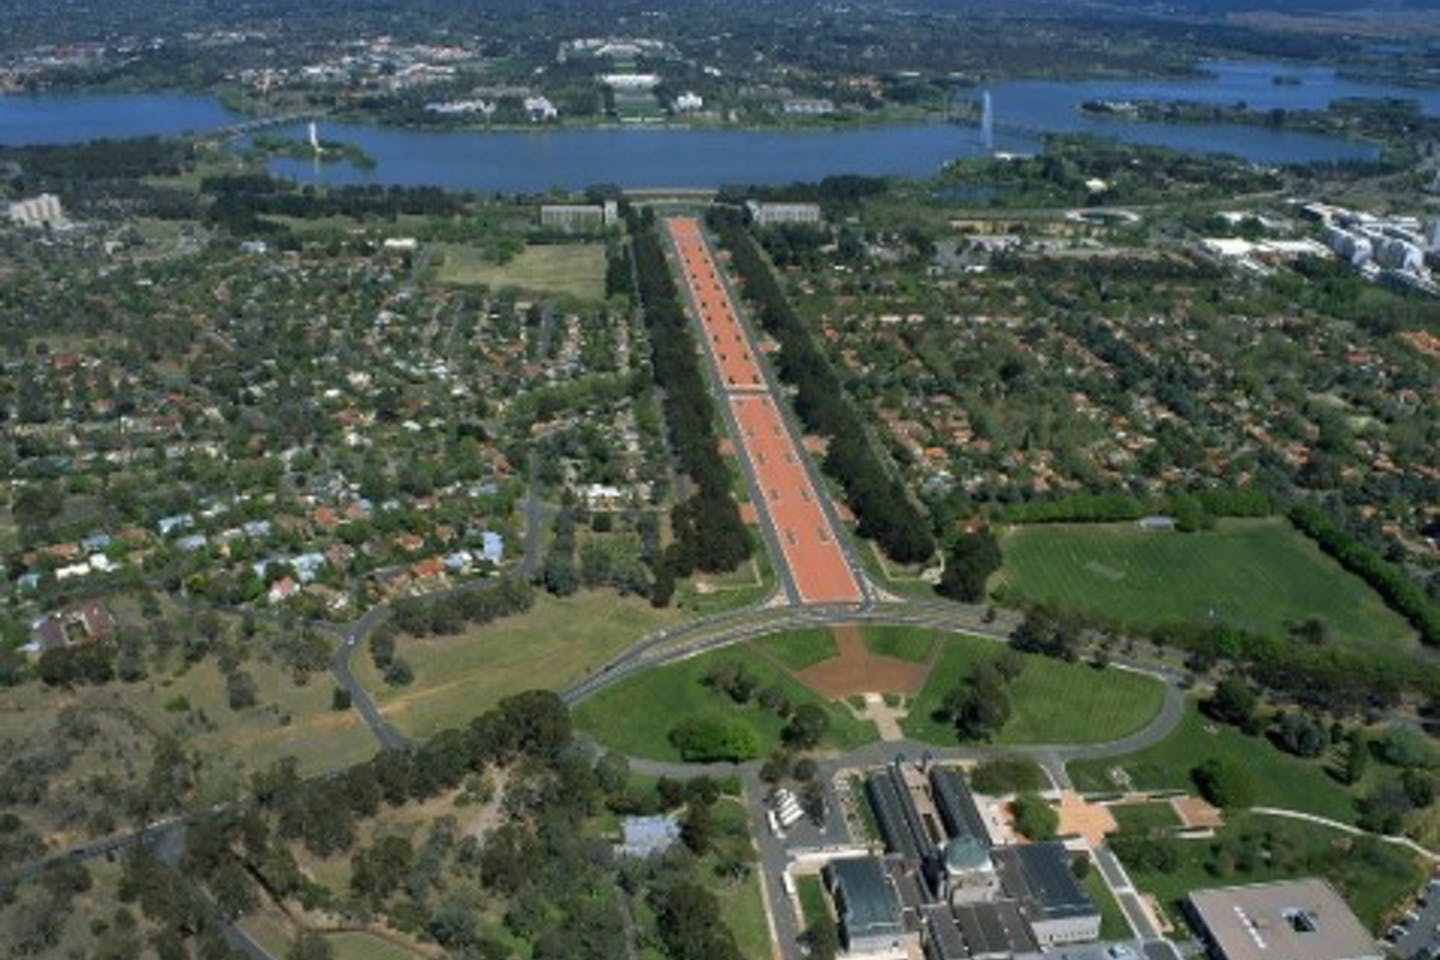 Aerial_View_of_Canberra2 colourfultripscom